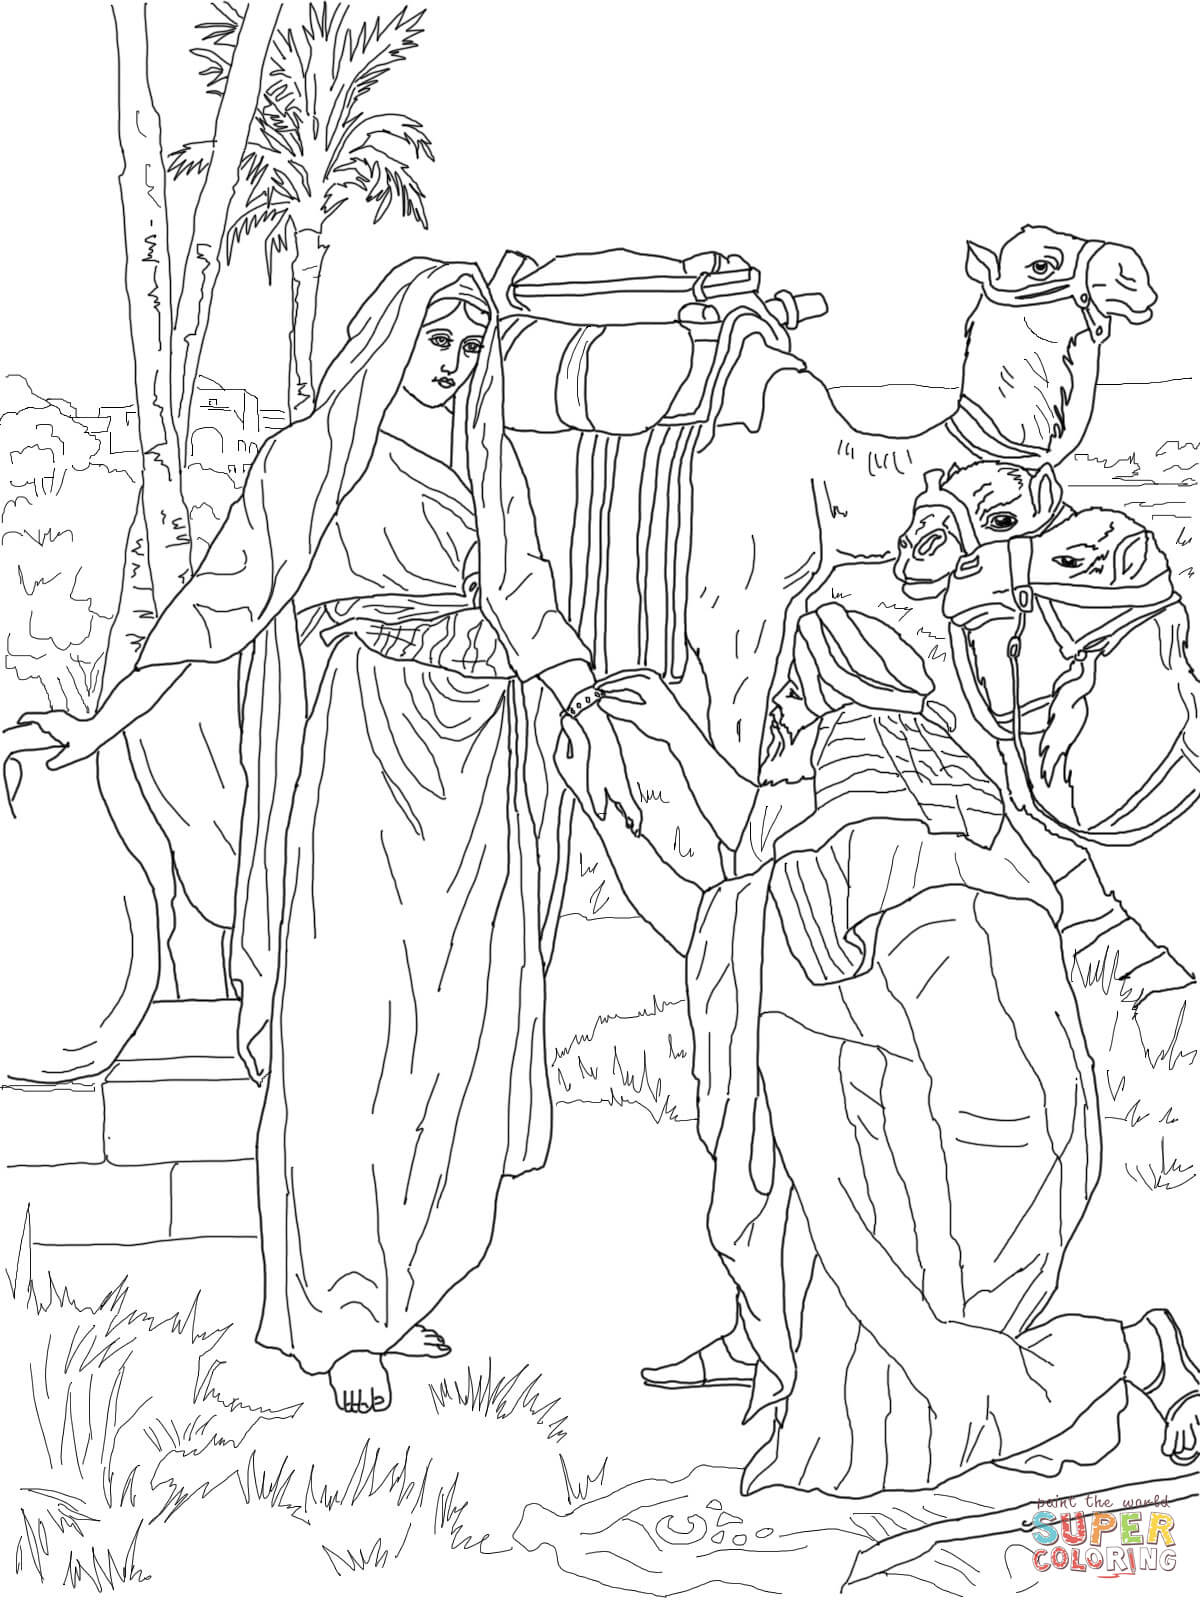 The Golden Calf Coloring Page Moses And Zipporah Coloring Page Free Printable Coloring Pages